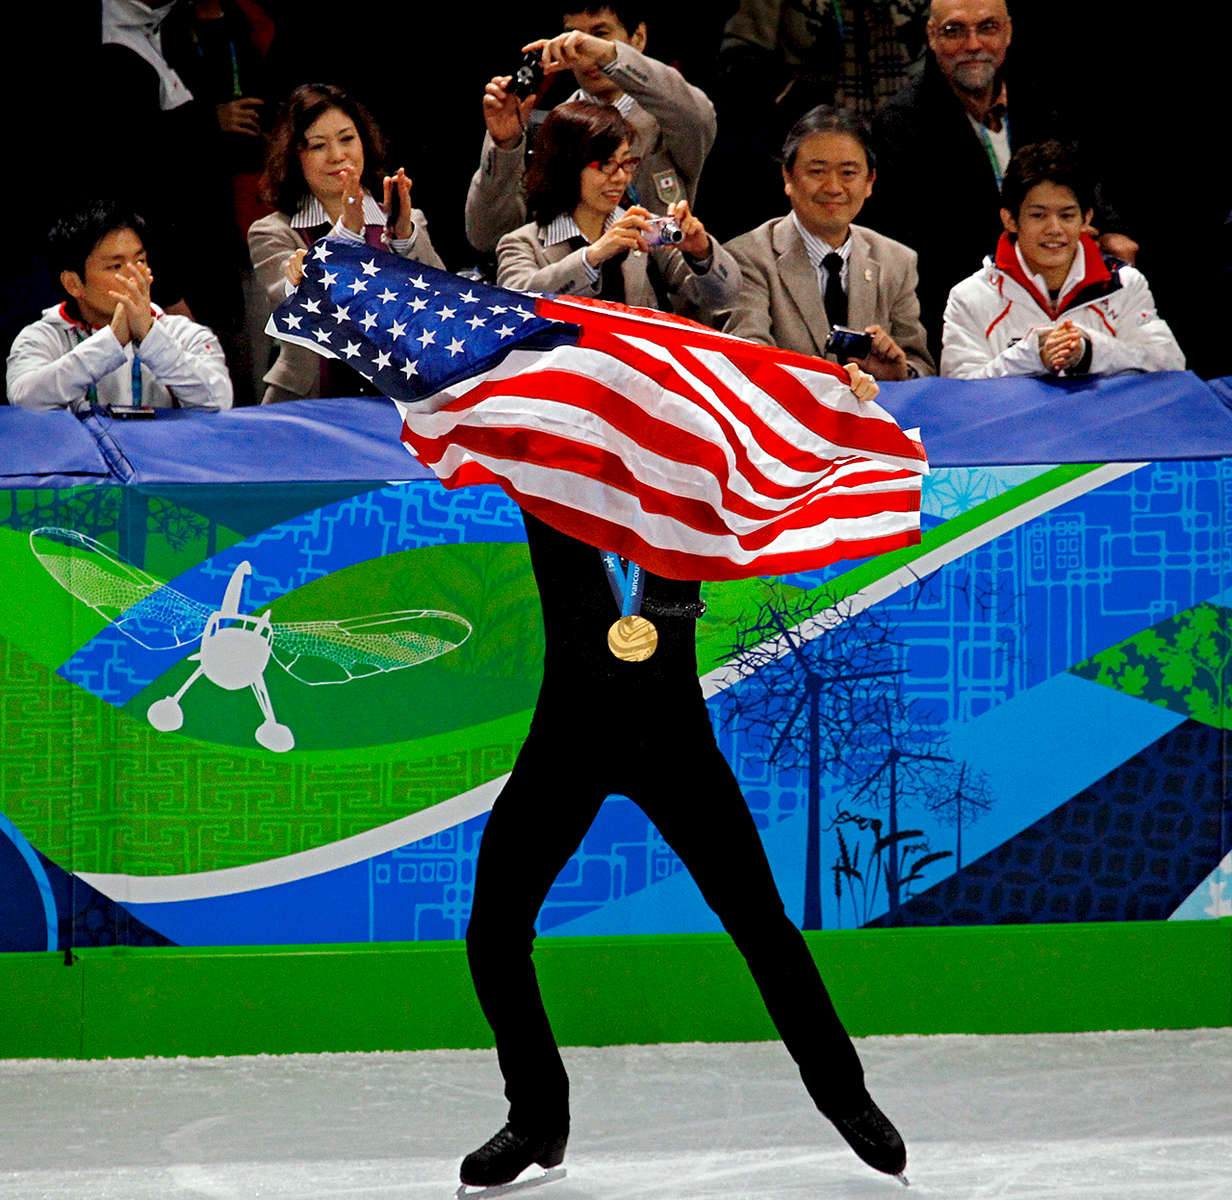 The United States' Evan Lysacek is applauded as he takes a victory lap with the American flag and his gold medal in the men's figure skating final during the 2010 Winter Olympic Games at Pacific Coliseum in Vancouver, British Columbia, Canada.